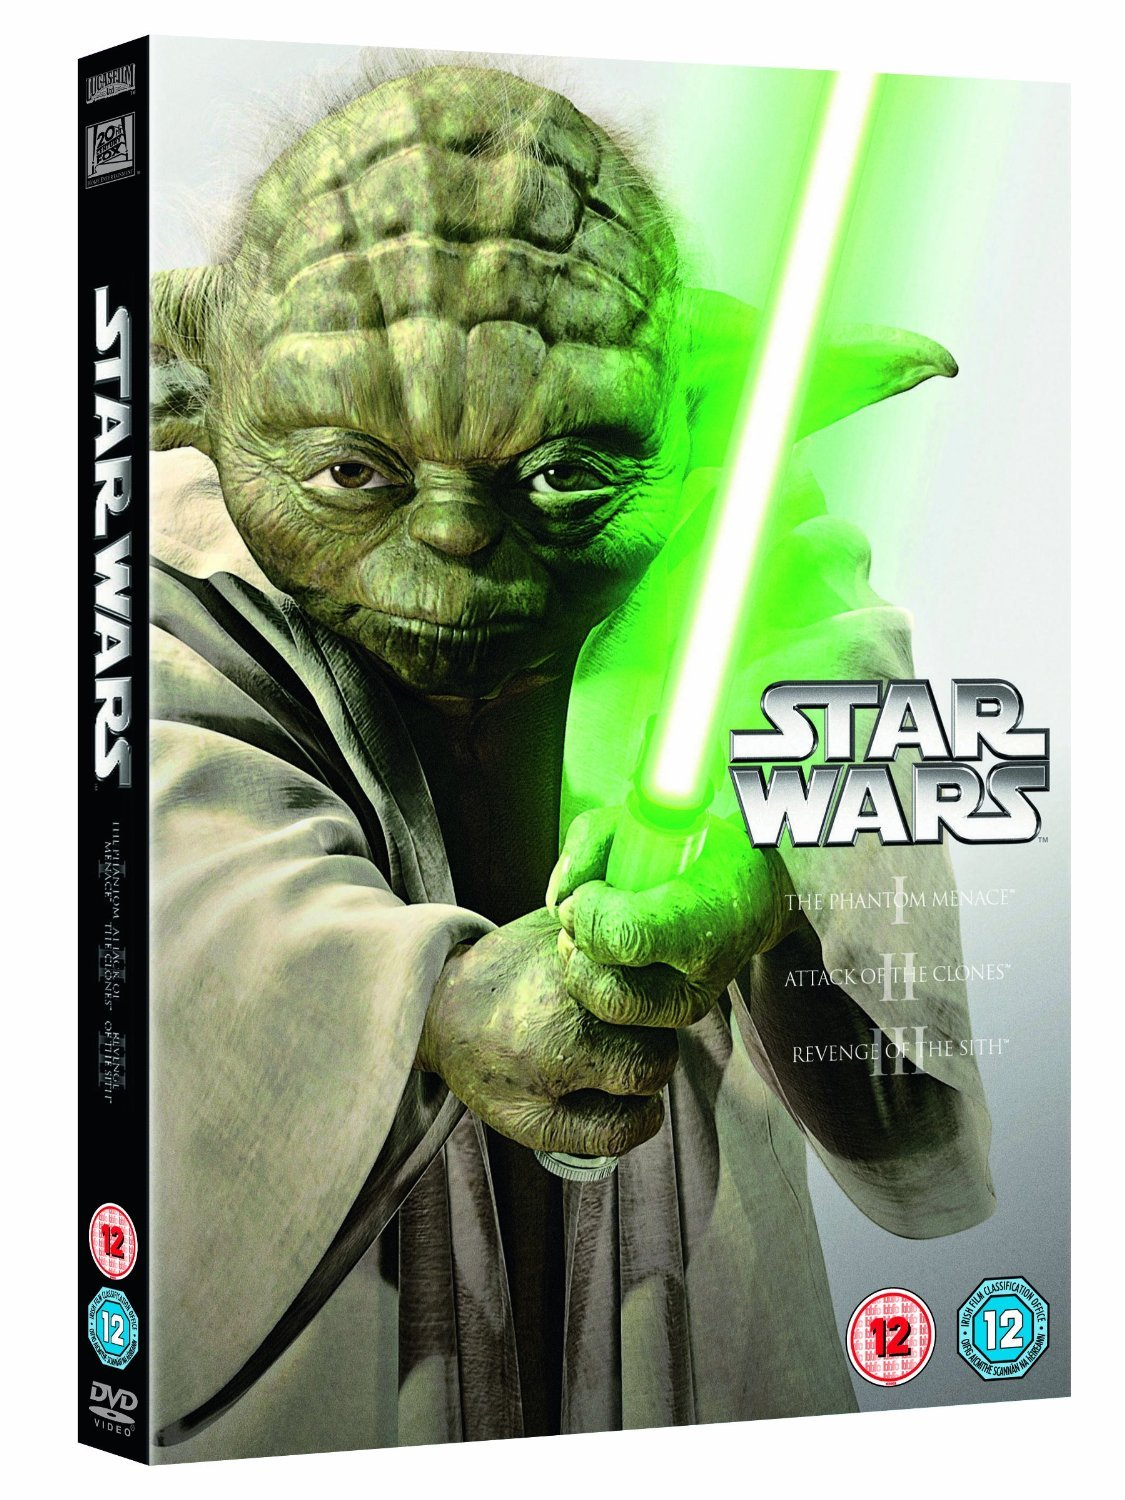 Star Wars I, II, III (Prequel Trilogy) on DVD image